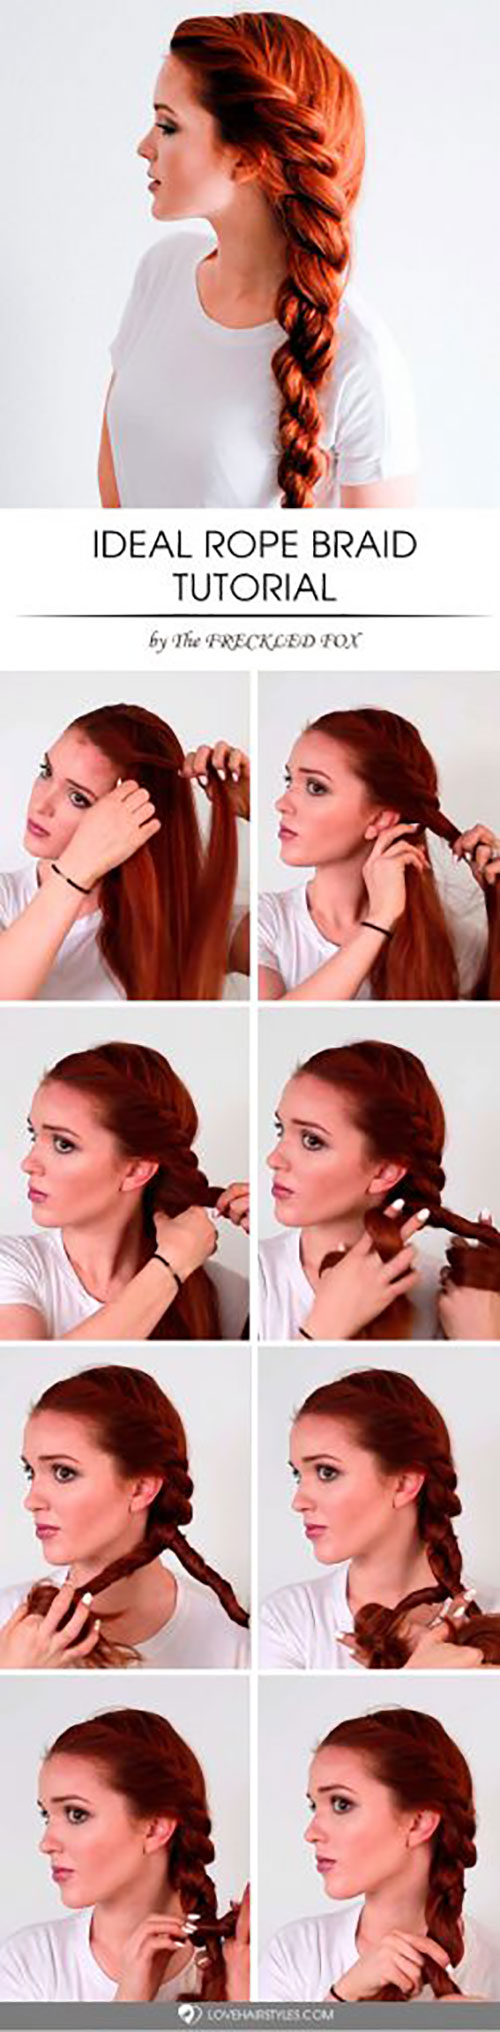 9. Ideal Rope Braid